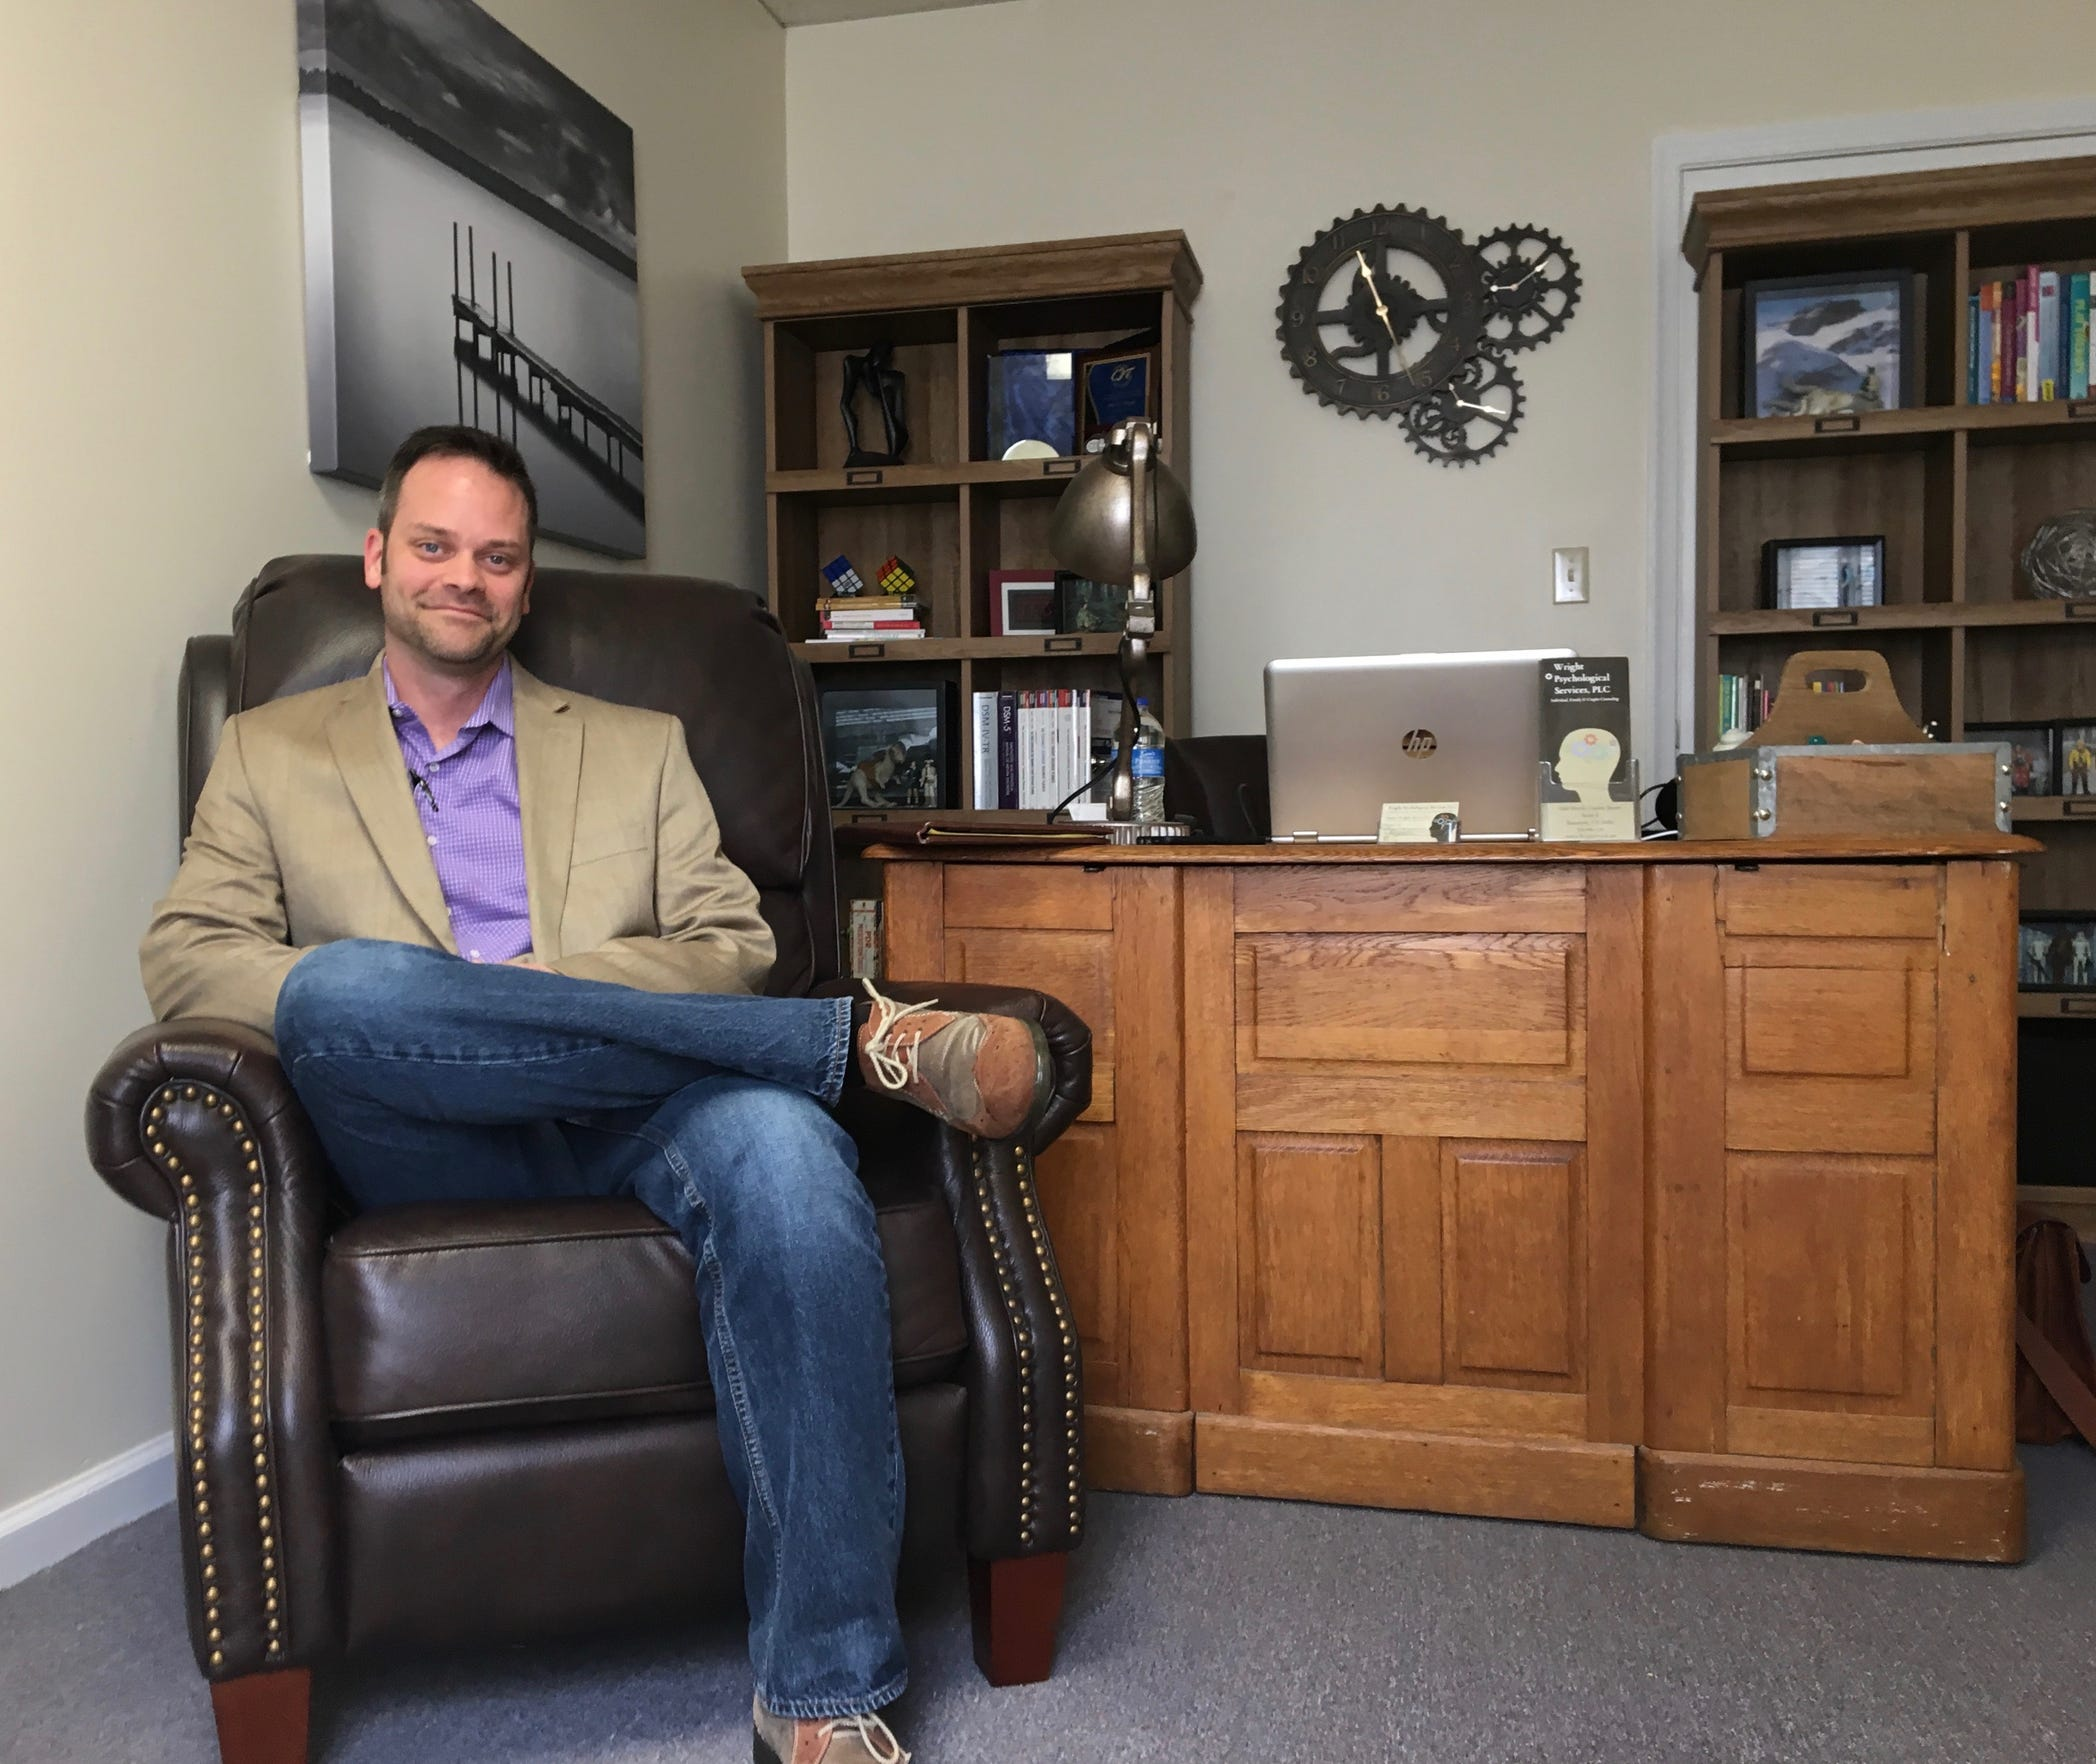 Photographed in his office at Wright Psychological Services on Tuesday, Aug. 28, 2018, Dustin Wright is a licensed professional counselor in Staunton. In 2018, he was awarded CIT International Behavioral Healthcare Professional of the Year and the Mental Health of America of Augusta's J. Lewis Gibbs Distinguished Service Award.